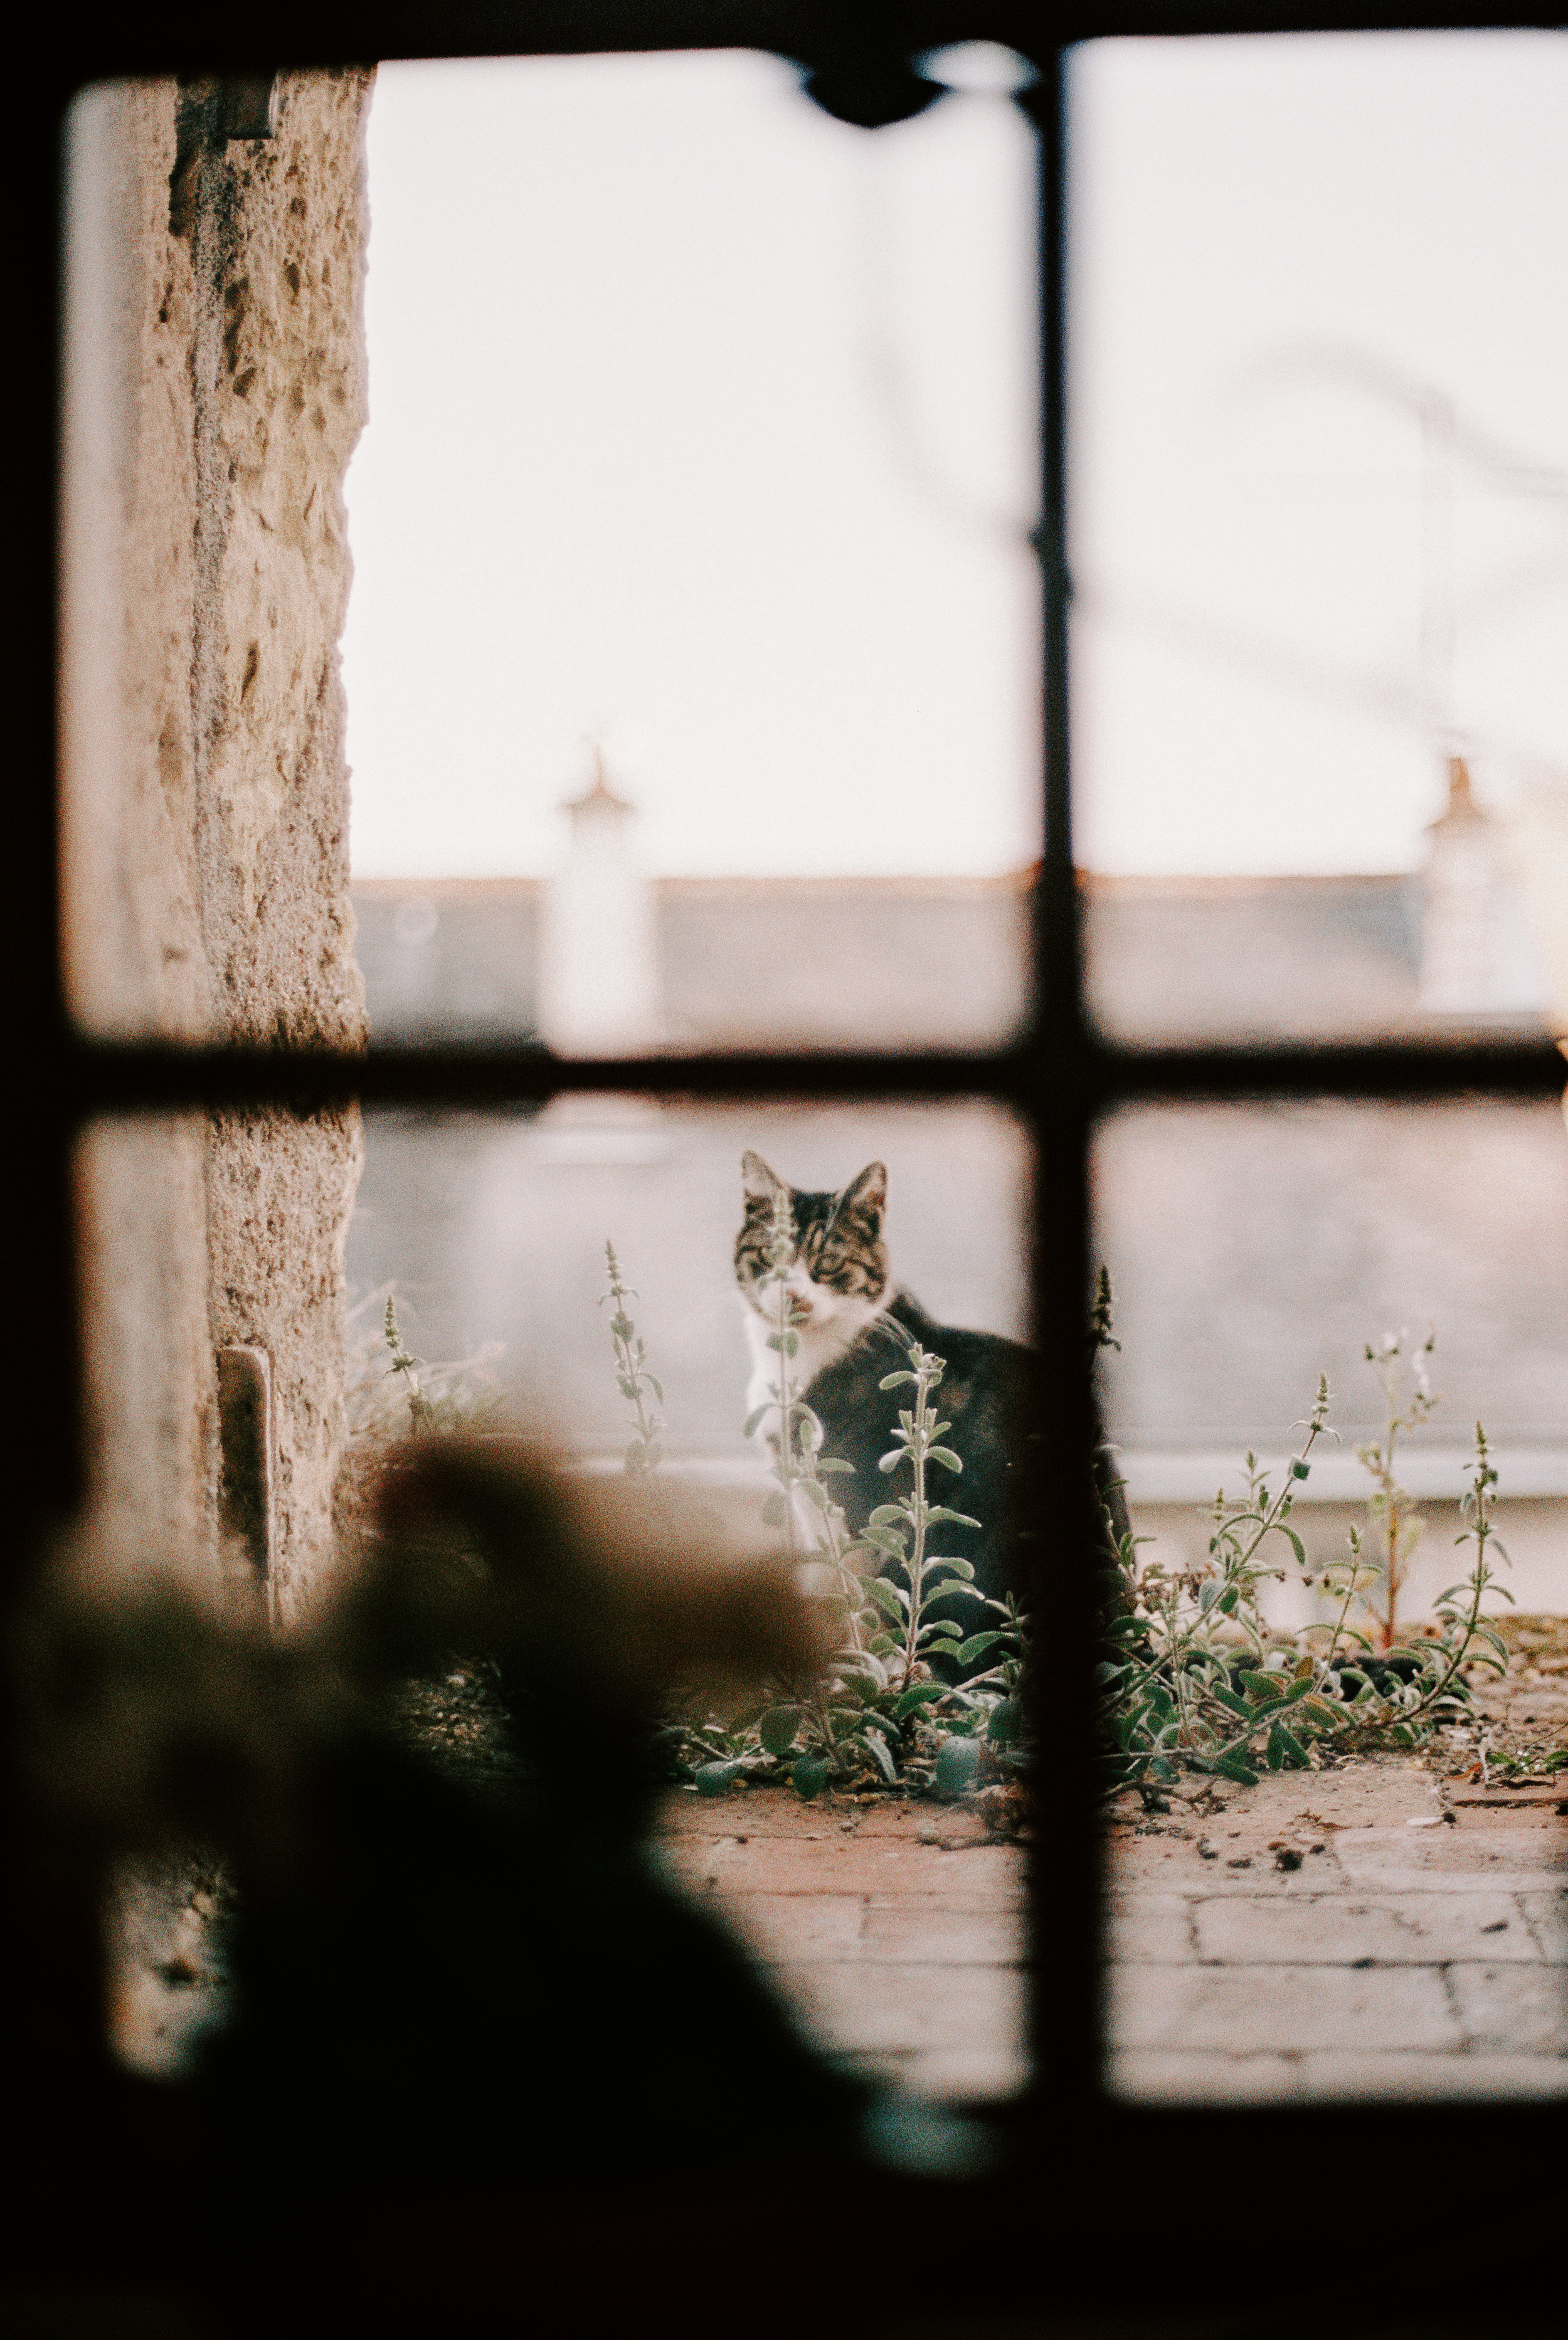 SO MANY FRENCH CATS. I was so hoping to see Parisian cats and when that didn't happen I got a little bummed. Amboise definitely made up for that deficit though in the BEST possible way.